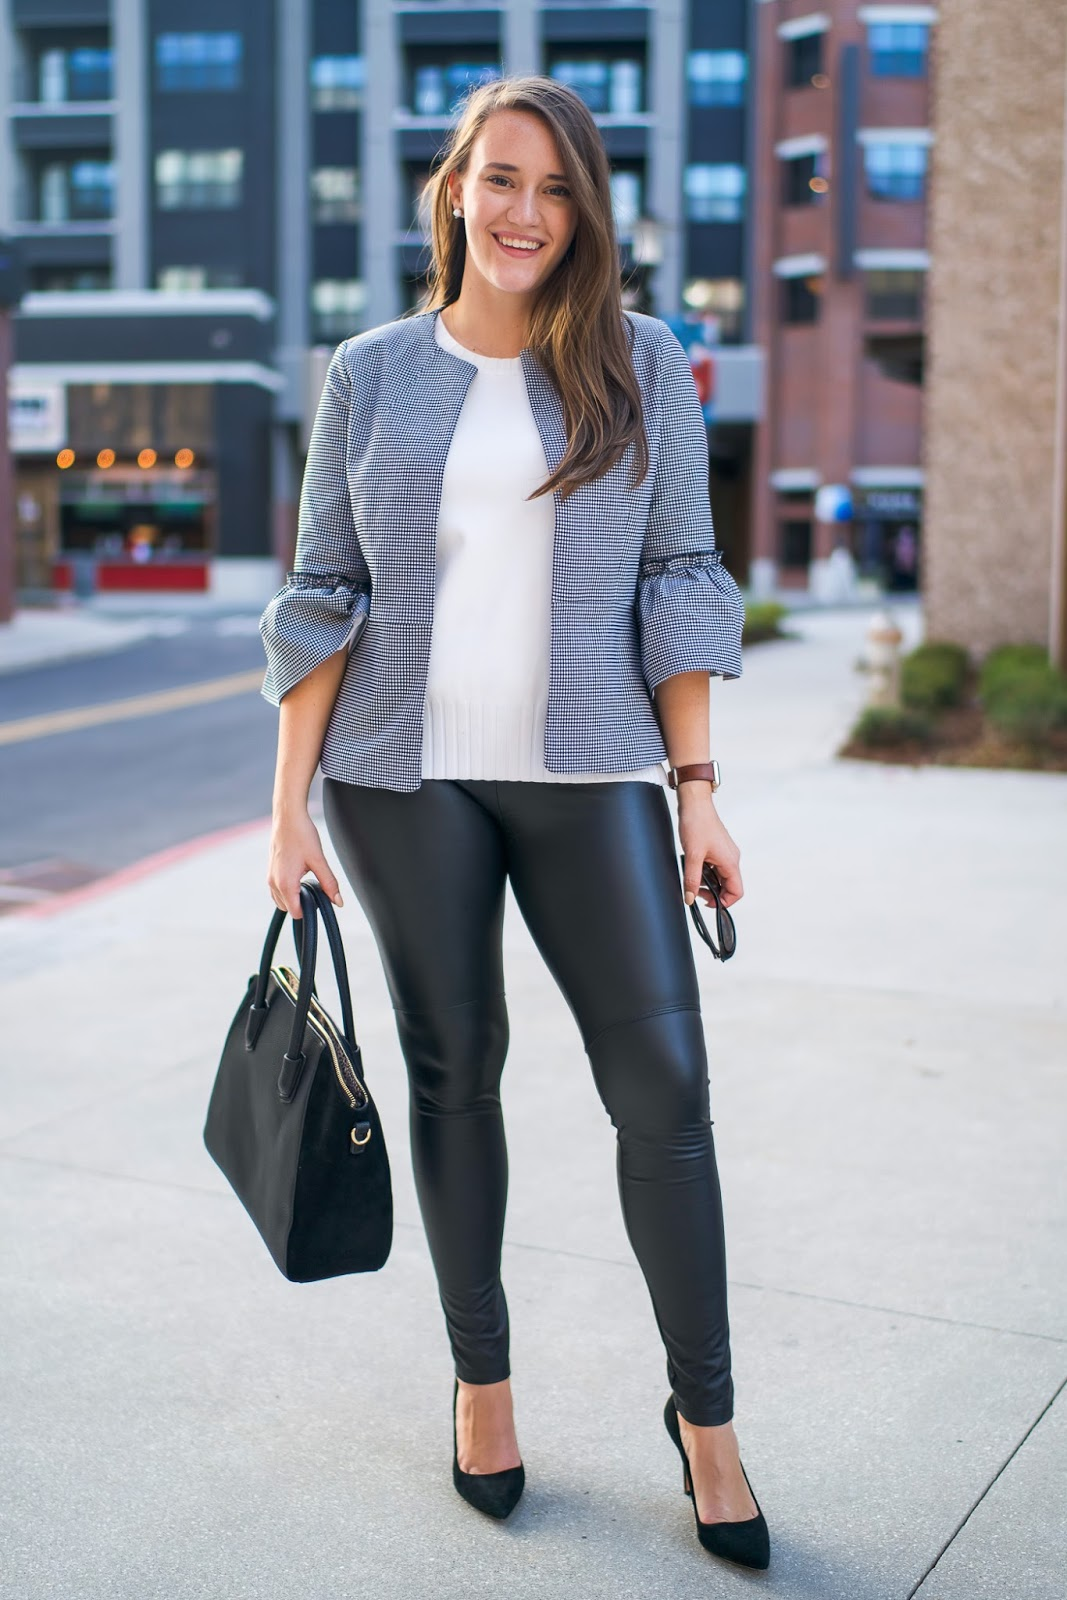 How To Wear Leather Leggings To Work | New York City Fashion And Lifestyle Blog | Covering The Bases